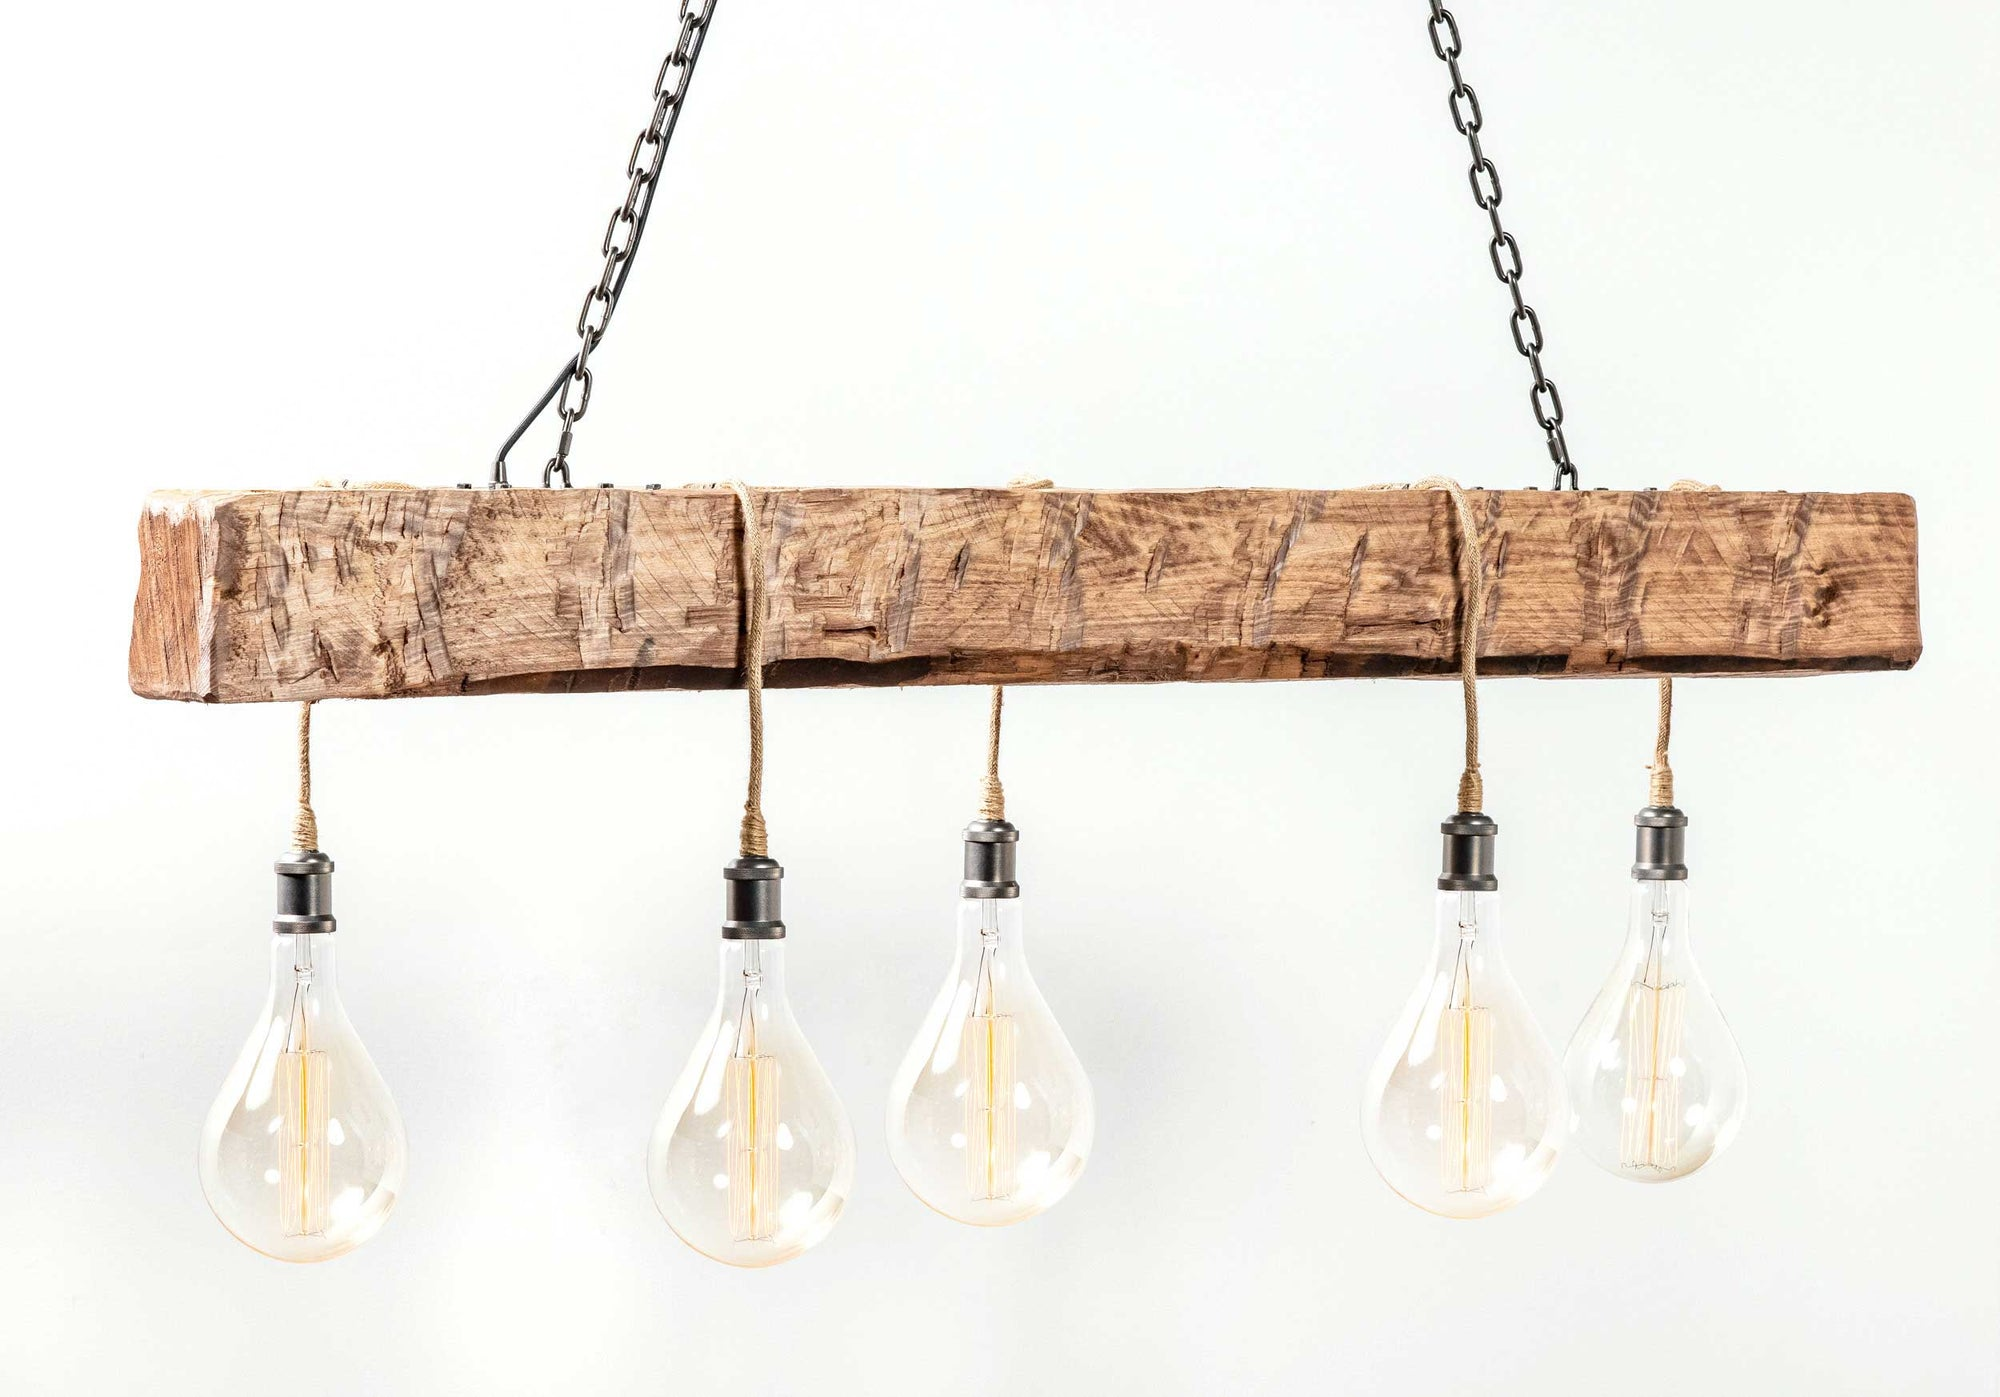 Cumberland Chandelier Hand-Hewn Brown with Hemp Lamp Cord Carroll by Design